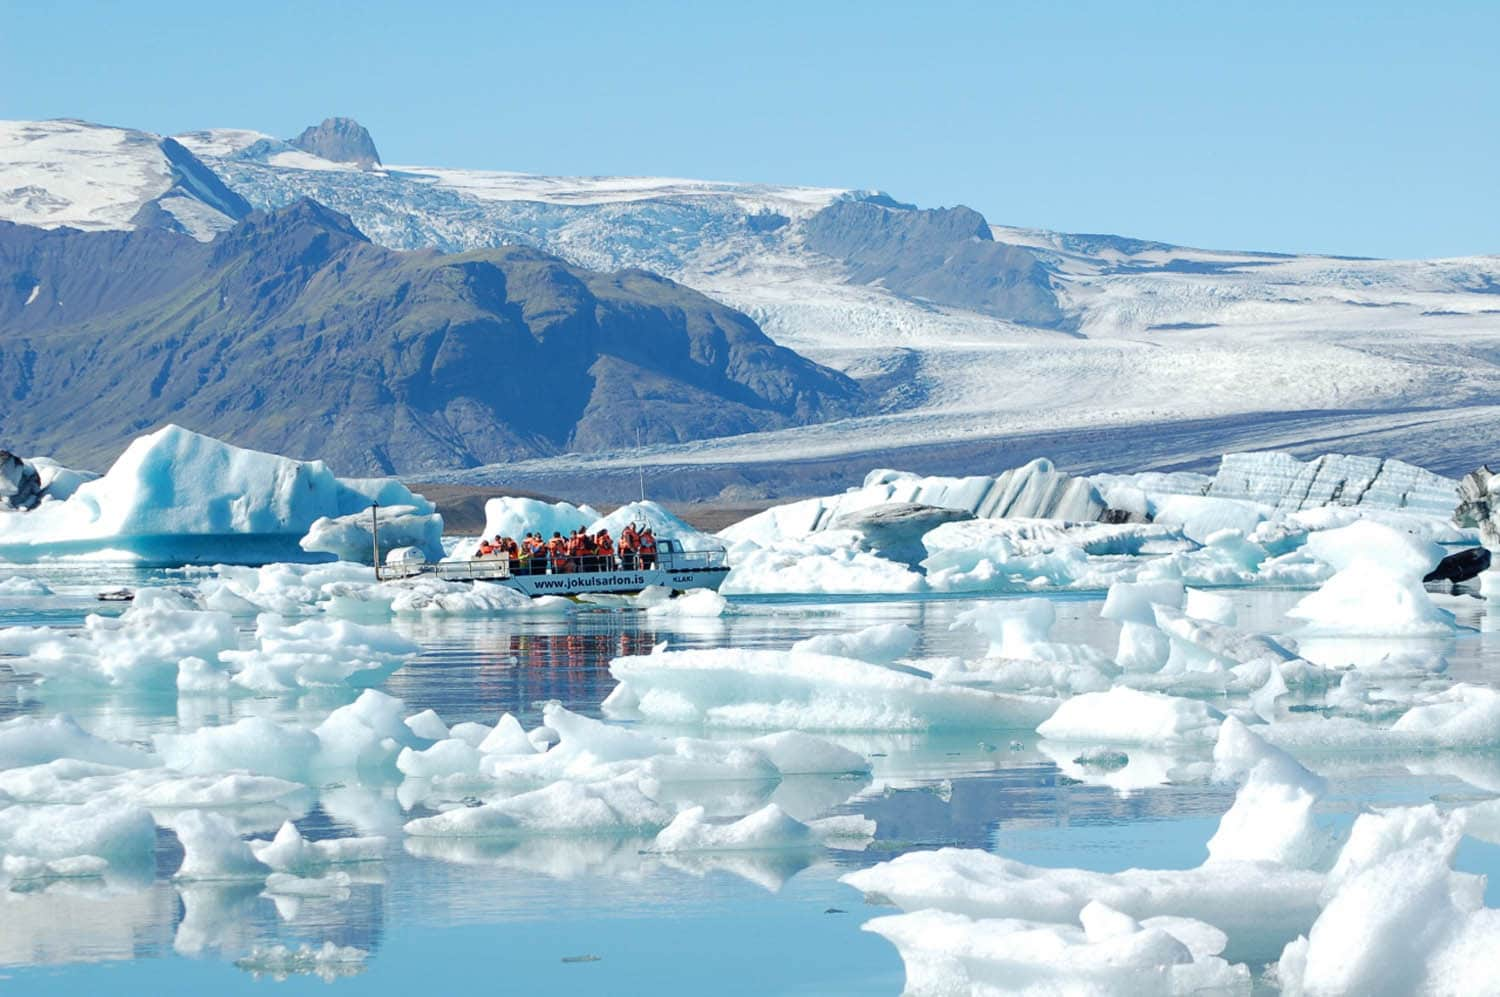 People on the boat tour on the Jökulsárlón glacier lagoon